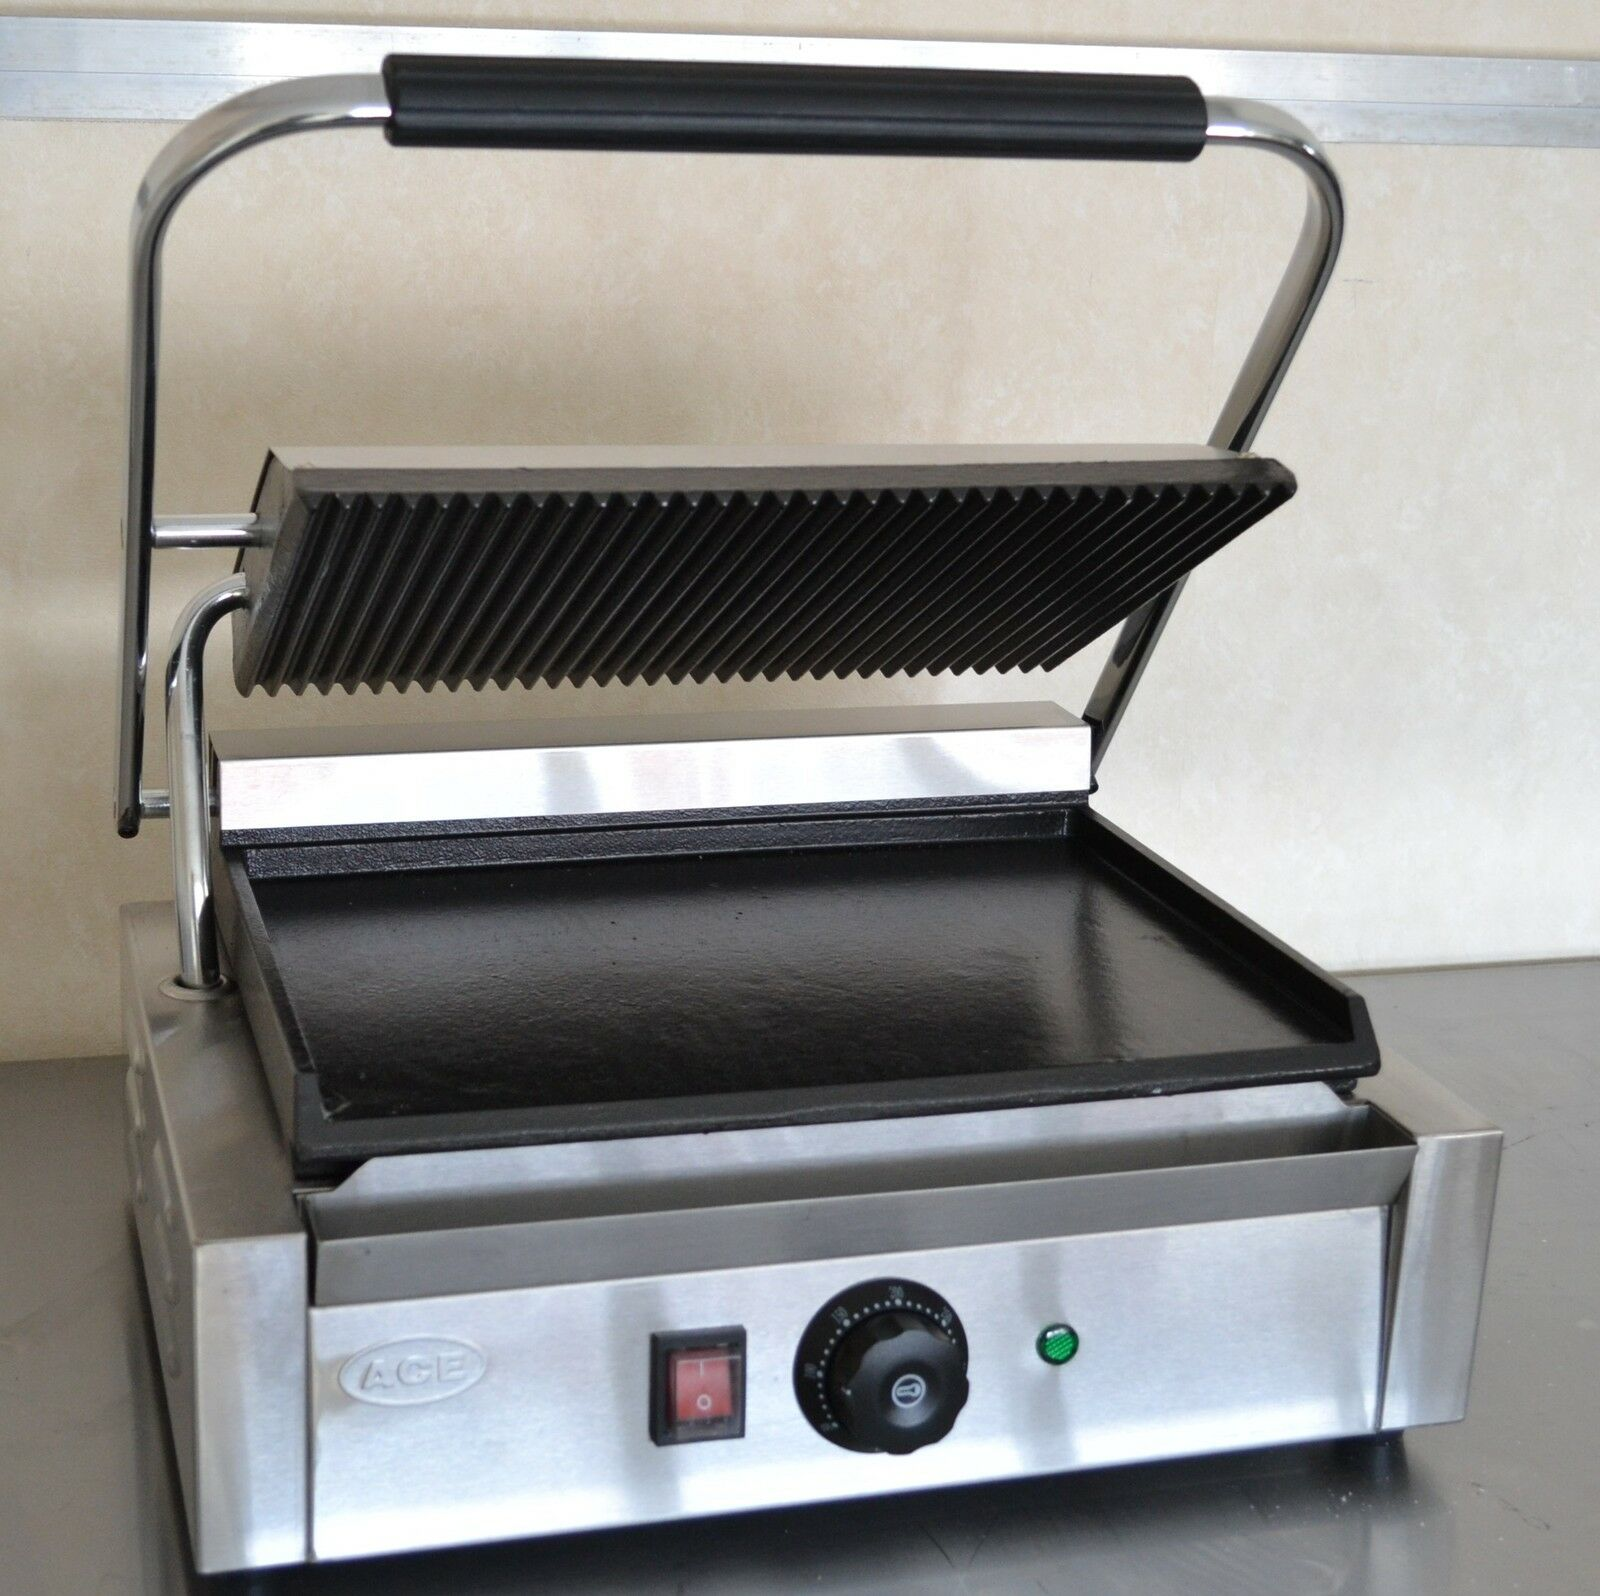 special offer new panini machine contact grill toaster. Black Bedroom Furniture Sets. Home Design Ideas